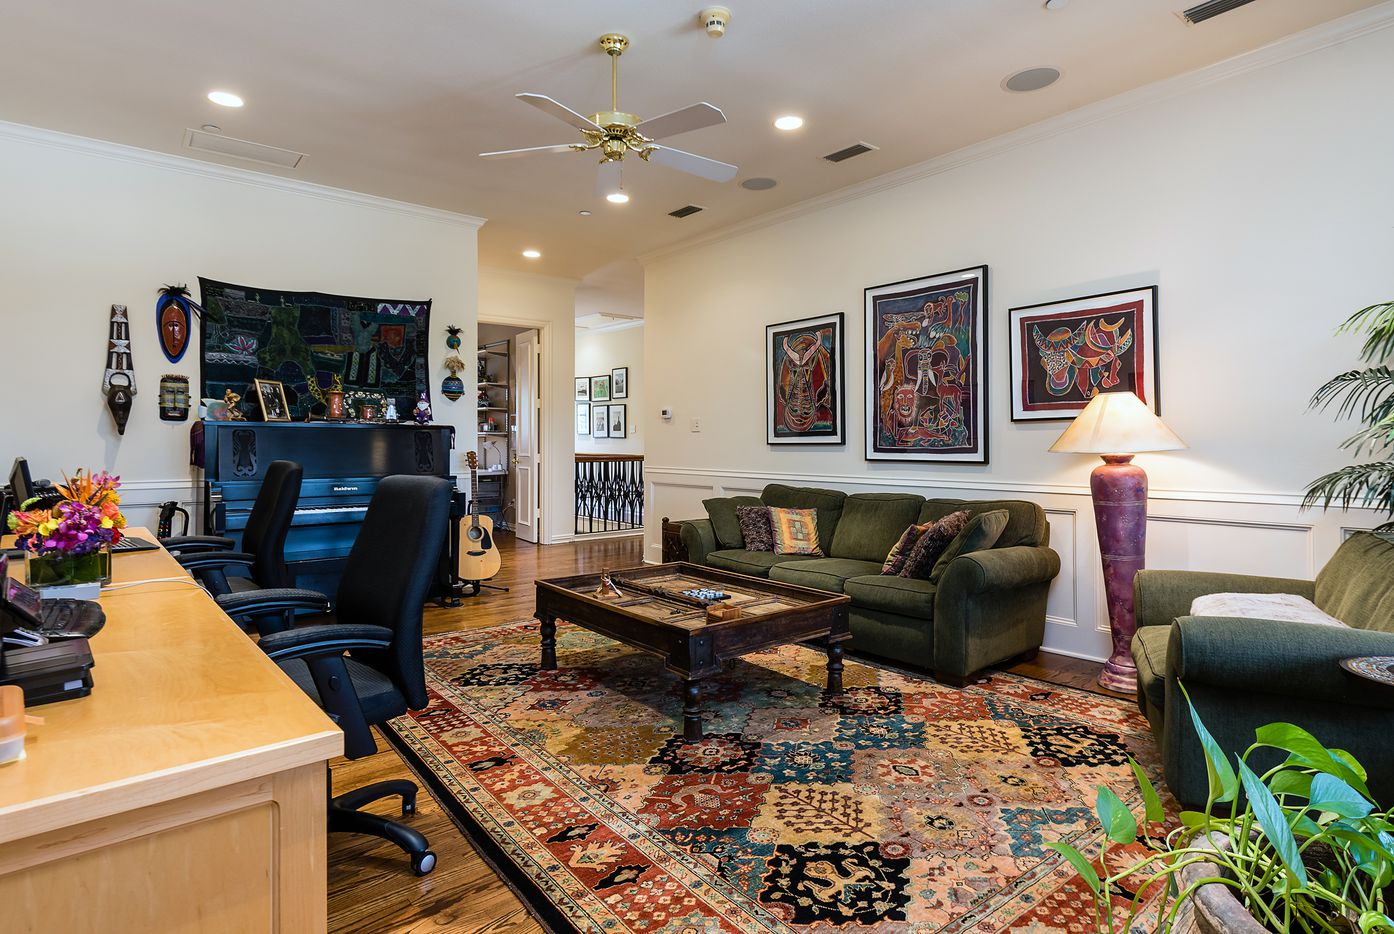 A look at the property at 10714 Lennox Lane in Dallas.